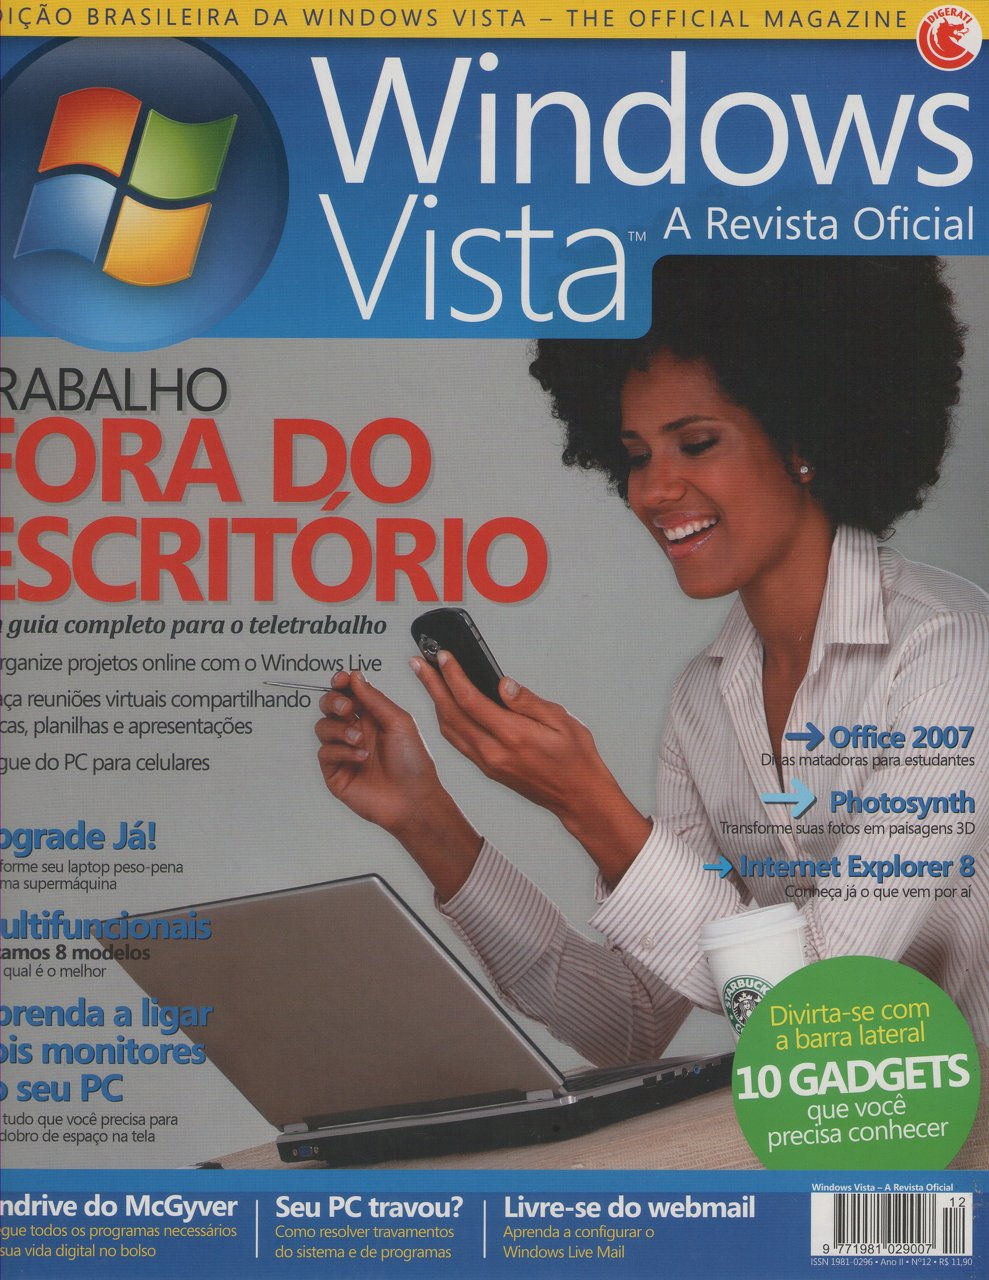 Capa Revista Windows Vista